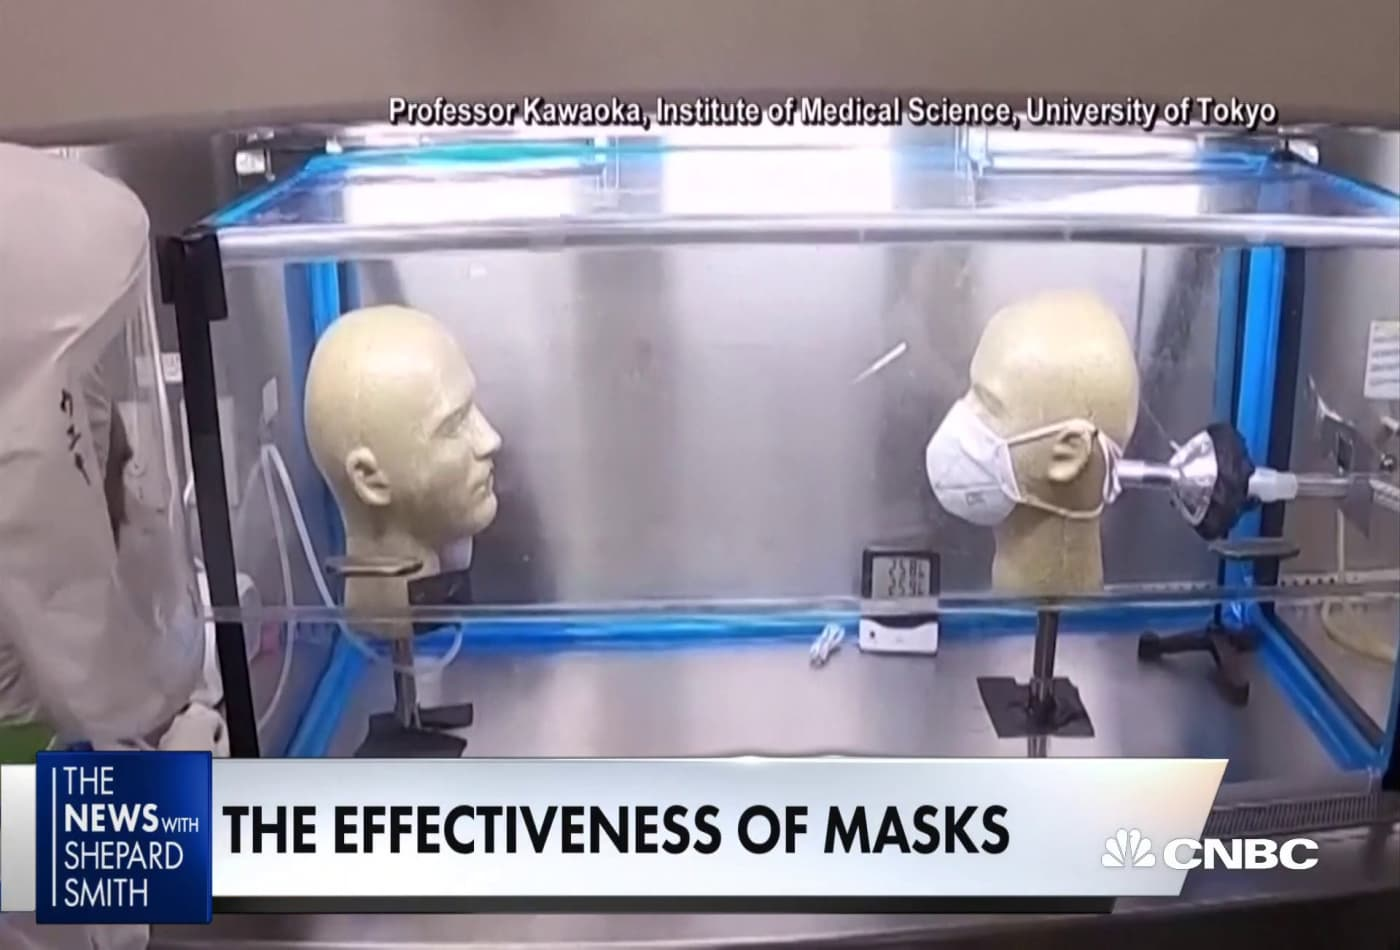 How effective are masks against Covid?